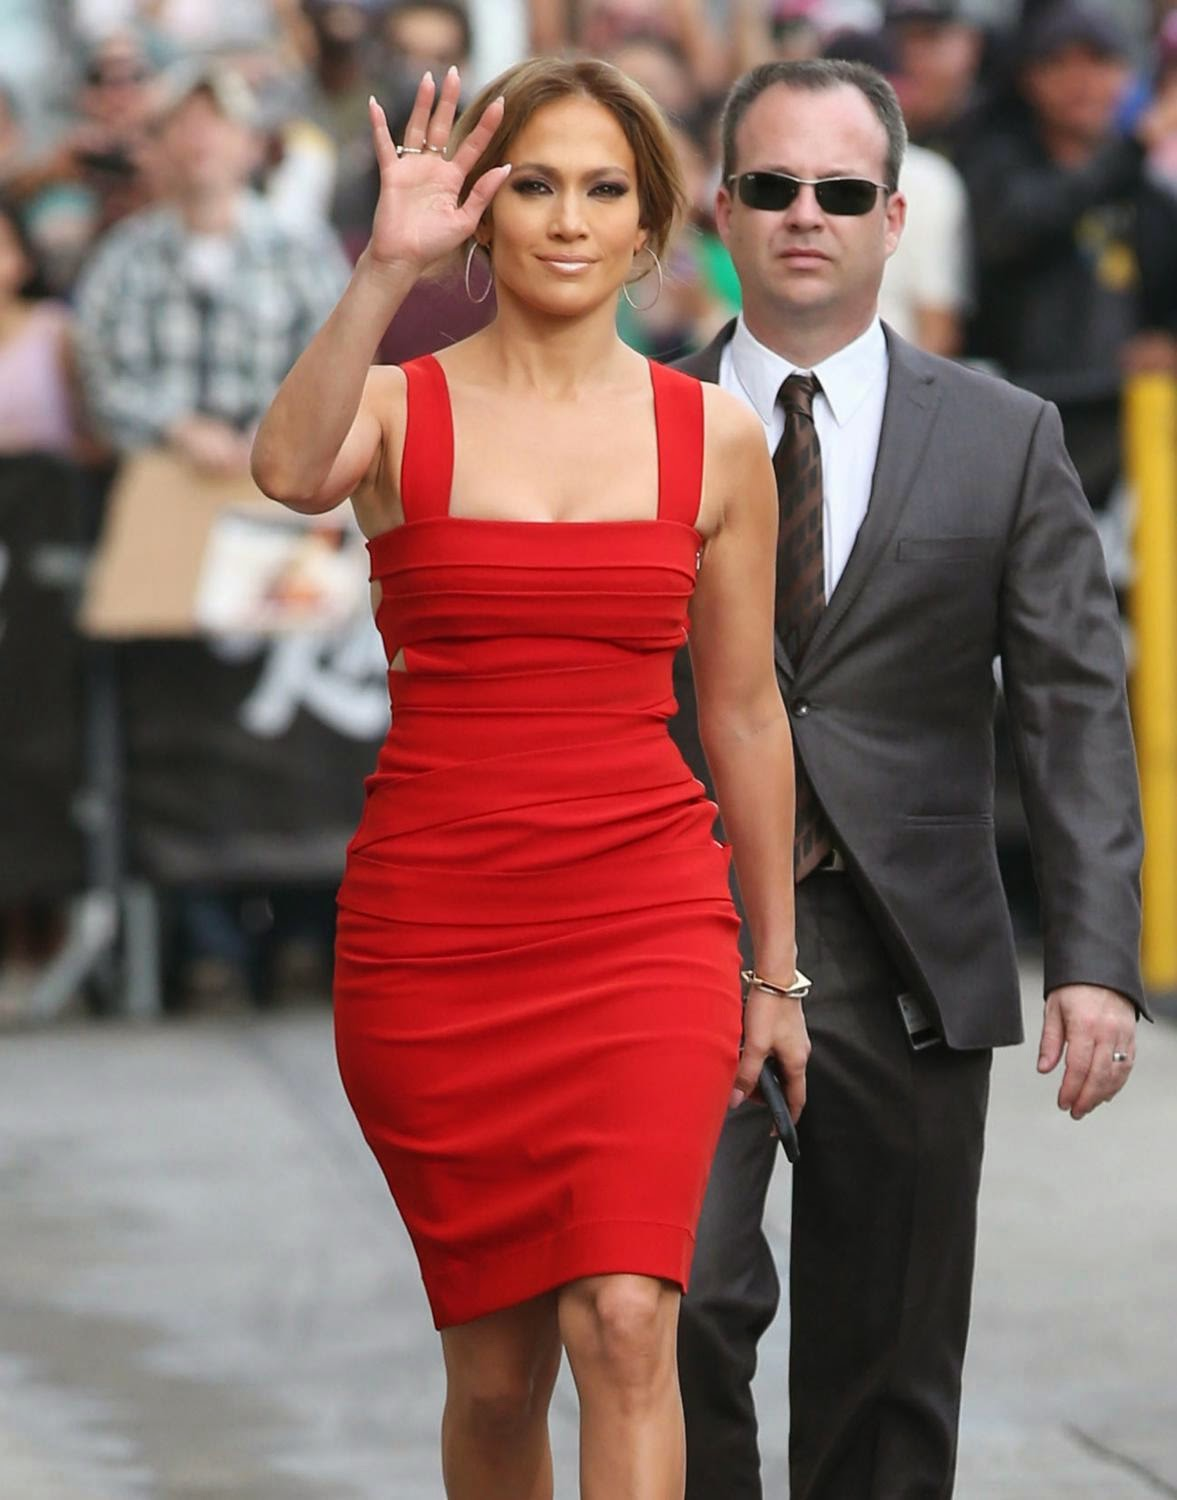 Singer, Actress @ Jennifer Lopez Looking Red Hot at Jimmy Kimmel Live Show